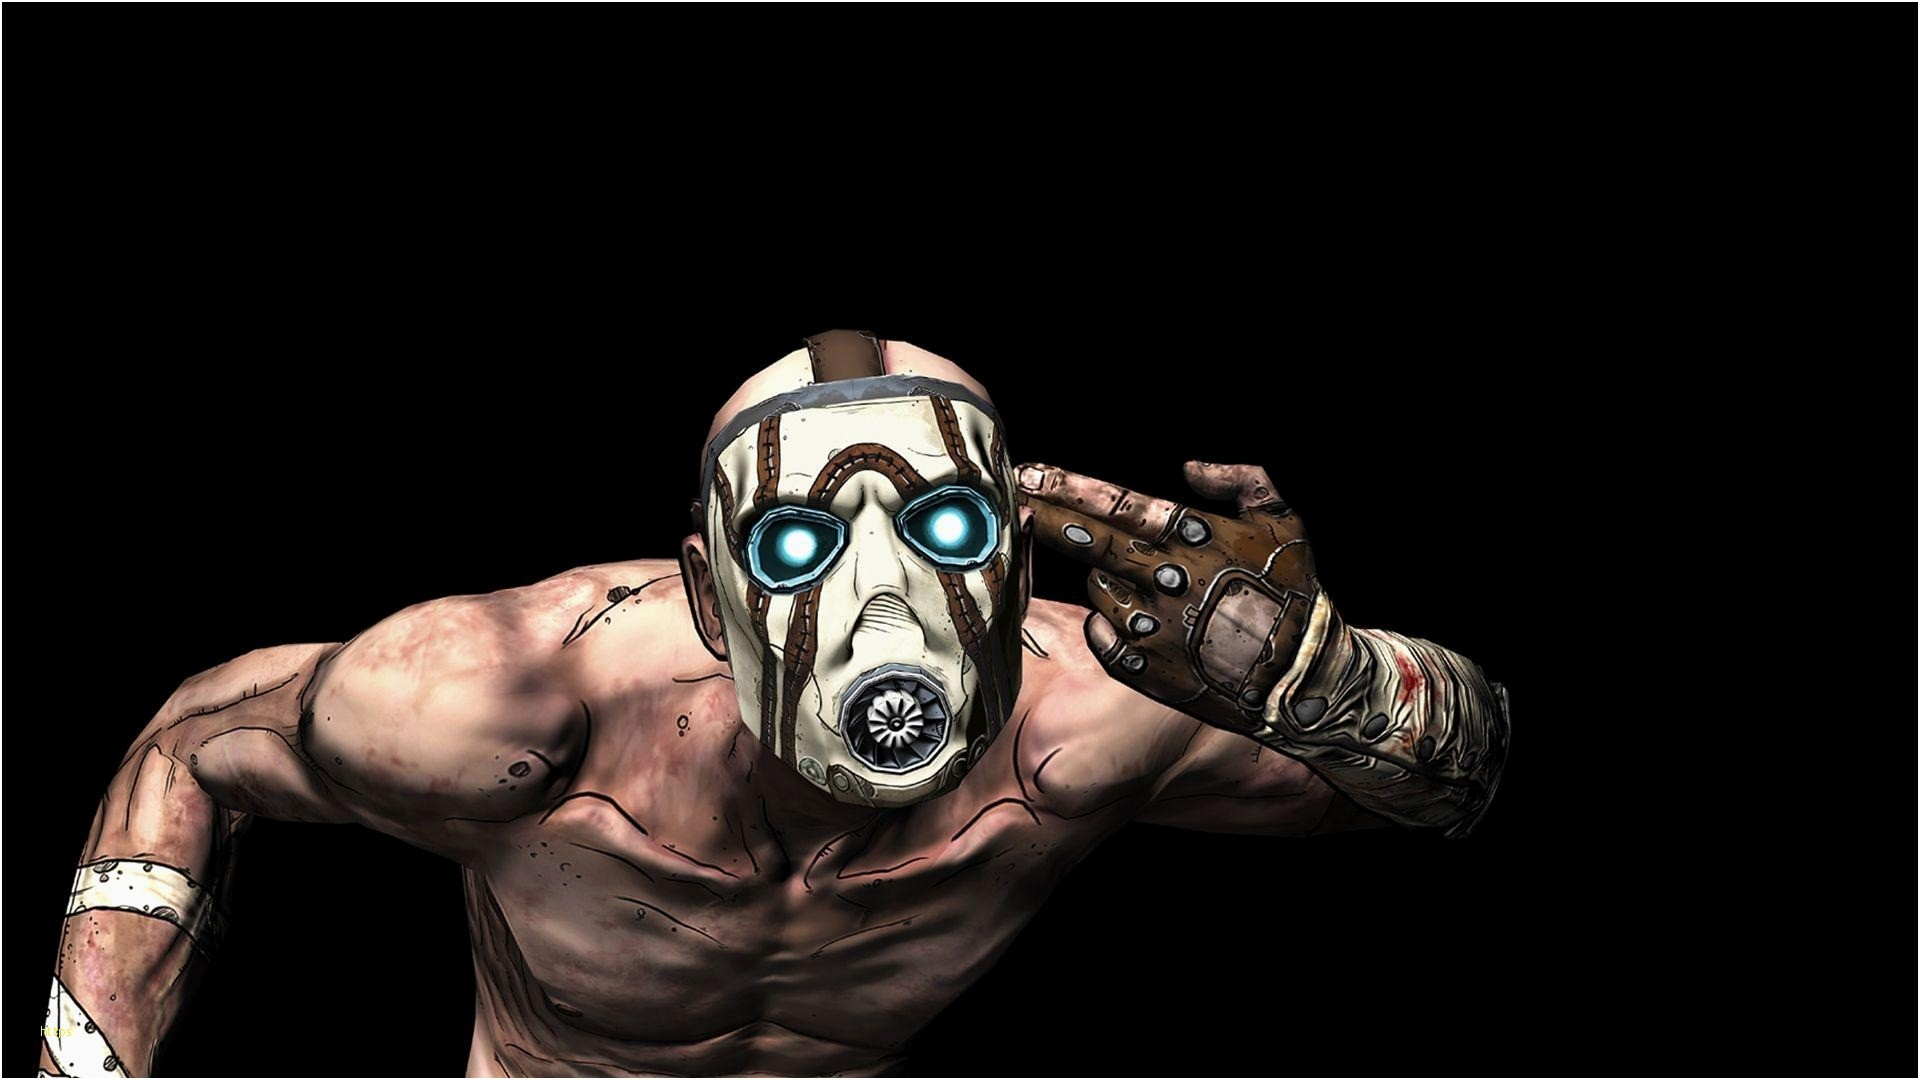 Borderlands Wallpapers Hd Wallpaper Collections